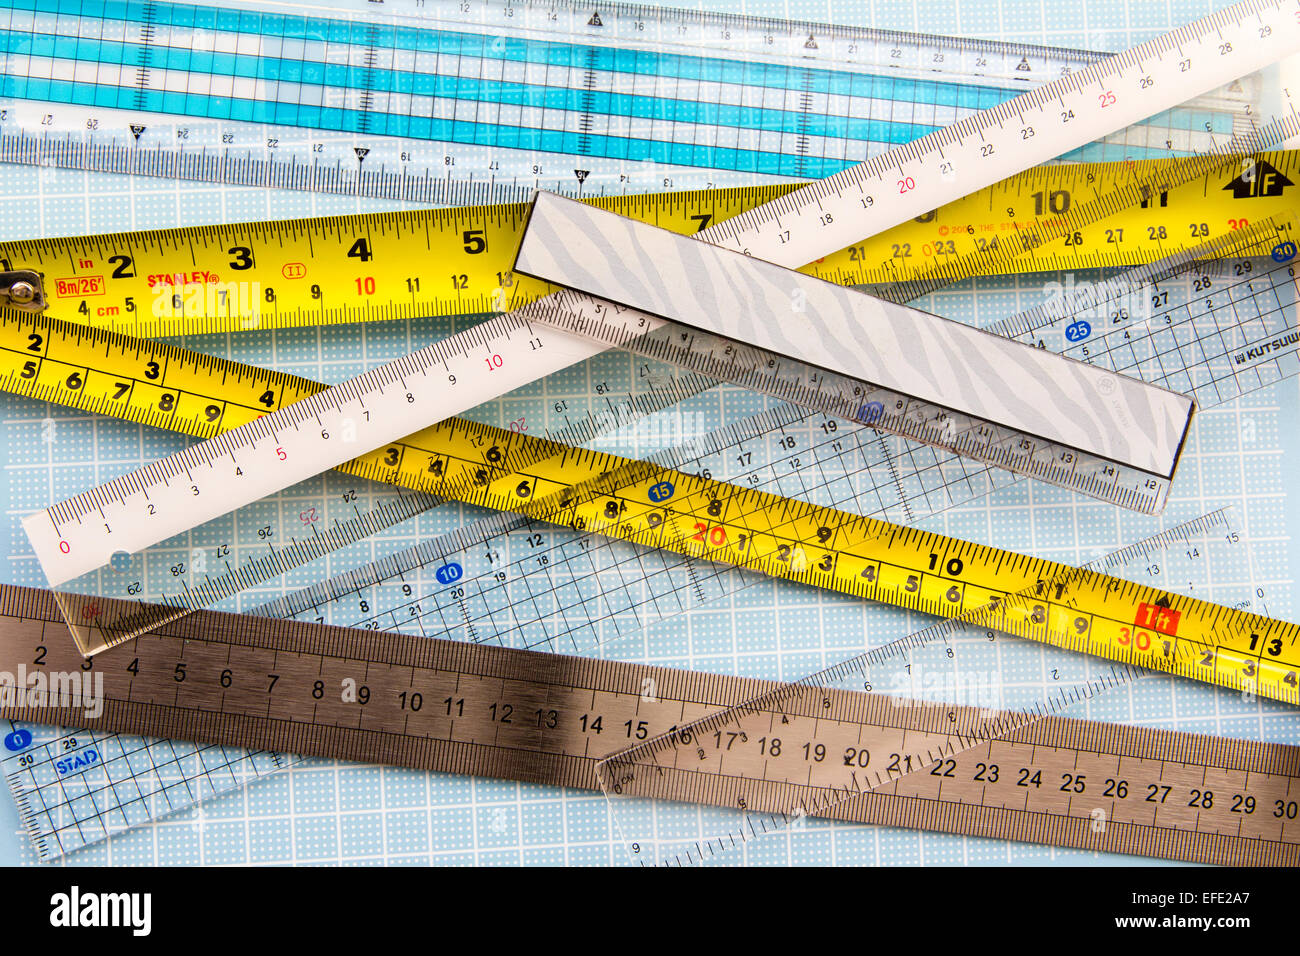 Rulers. Various types, transparent, plastic, metal, laid out on pale blue measuring grid board - Stock Image